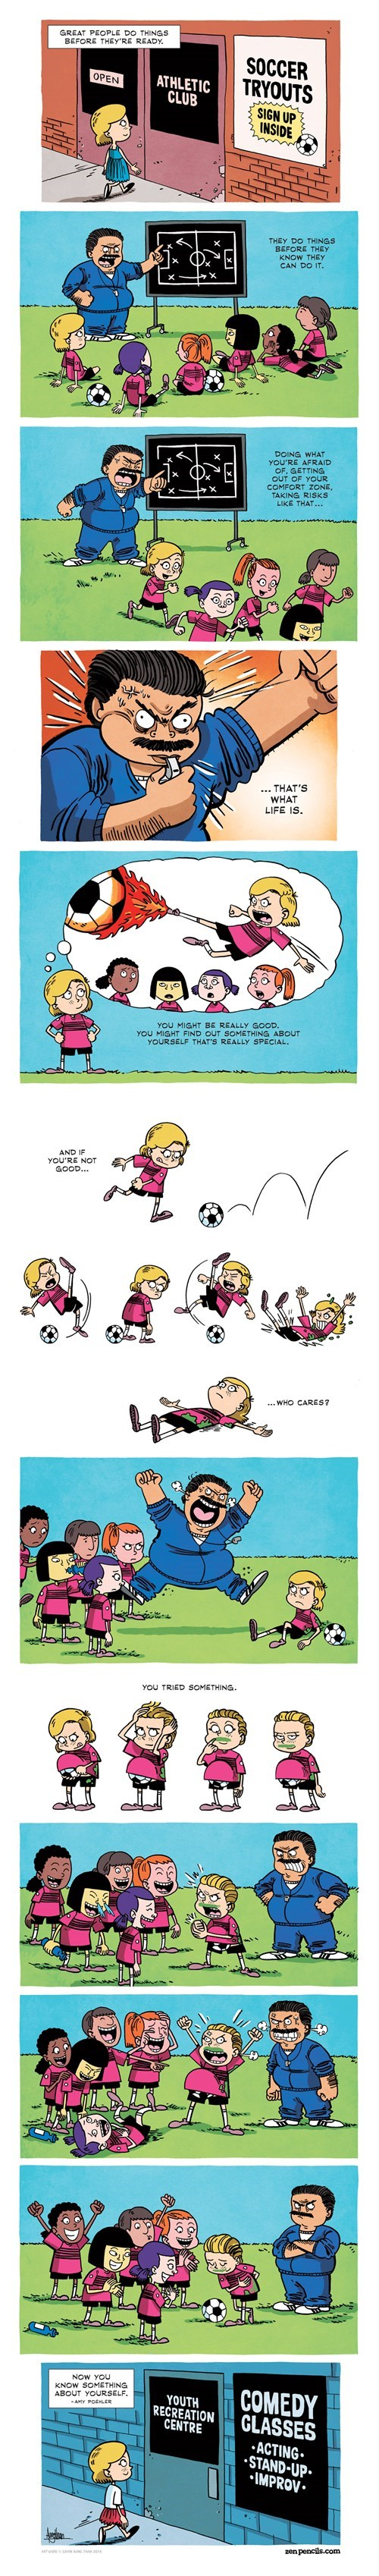 Amy Poehler nice try win web comics - 8320289280